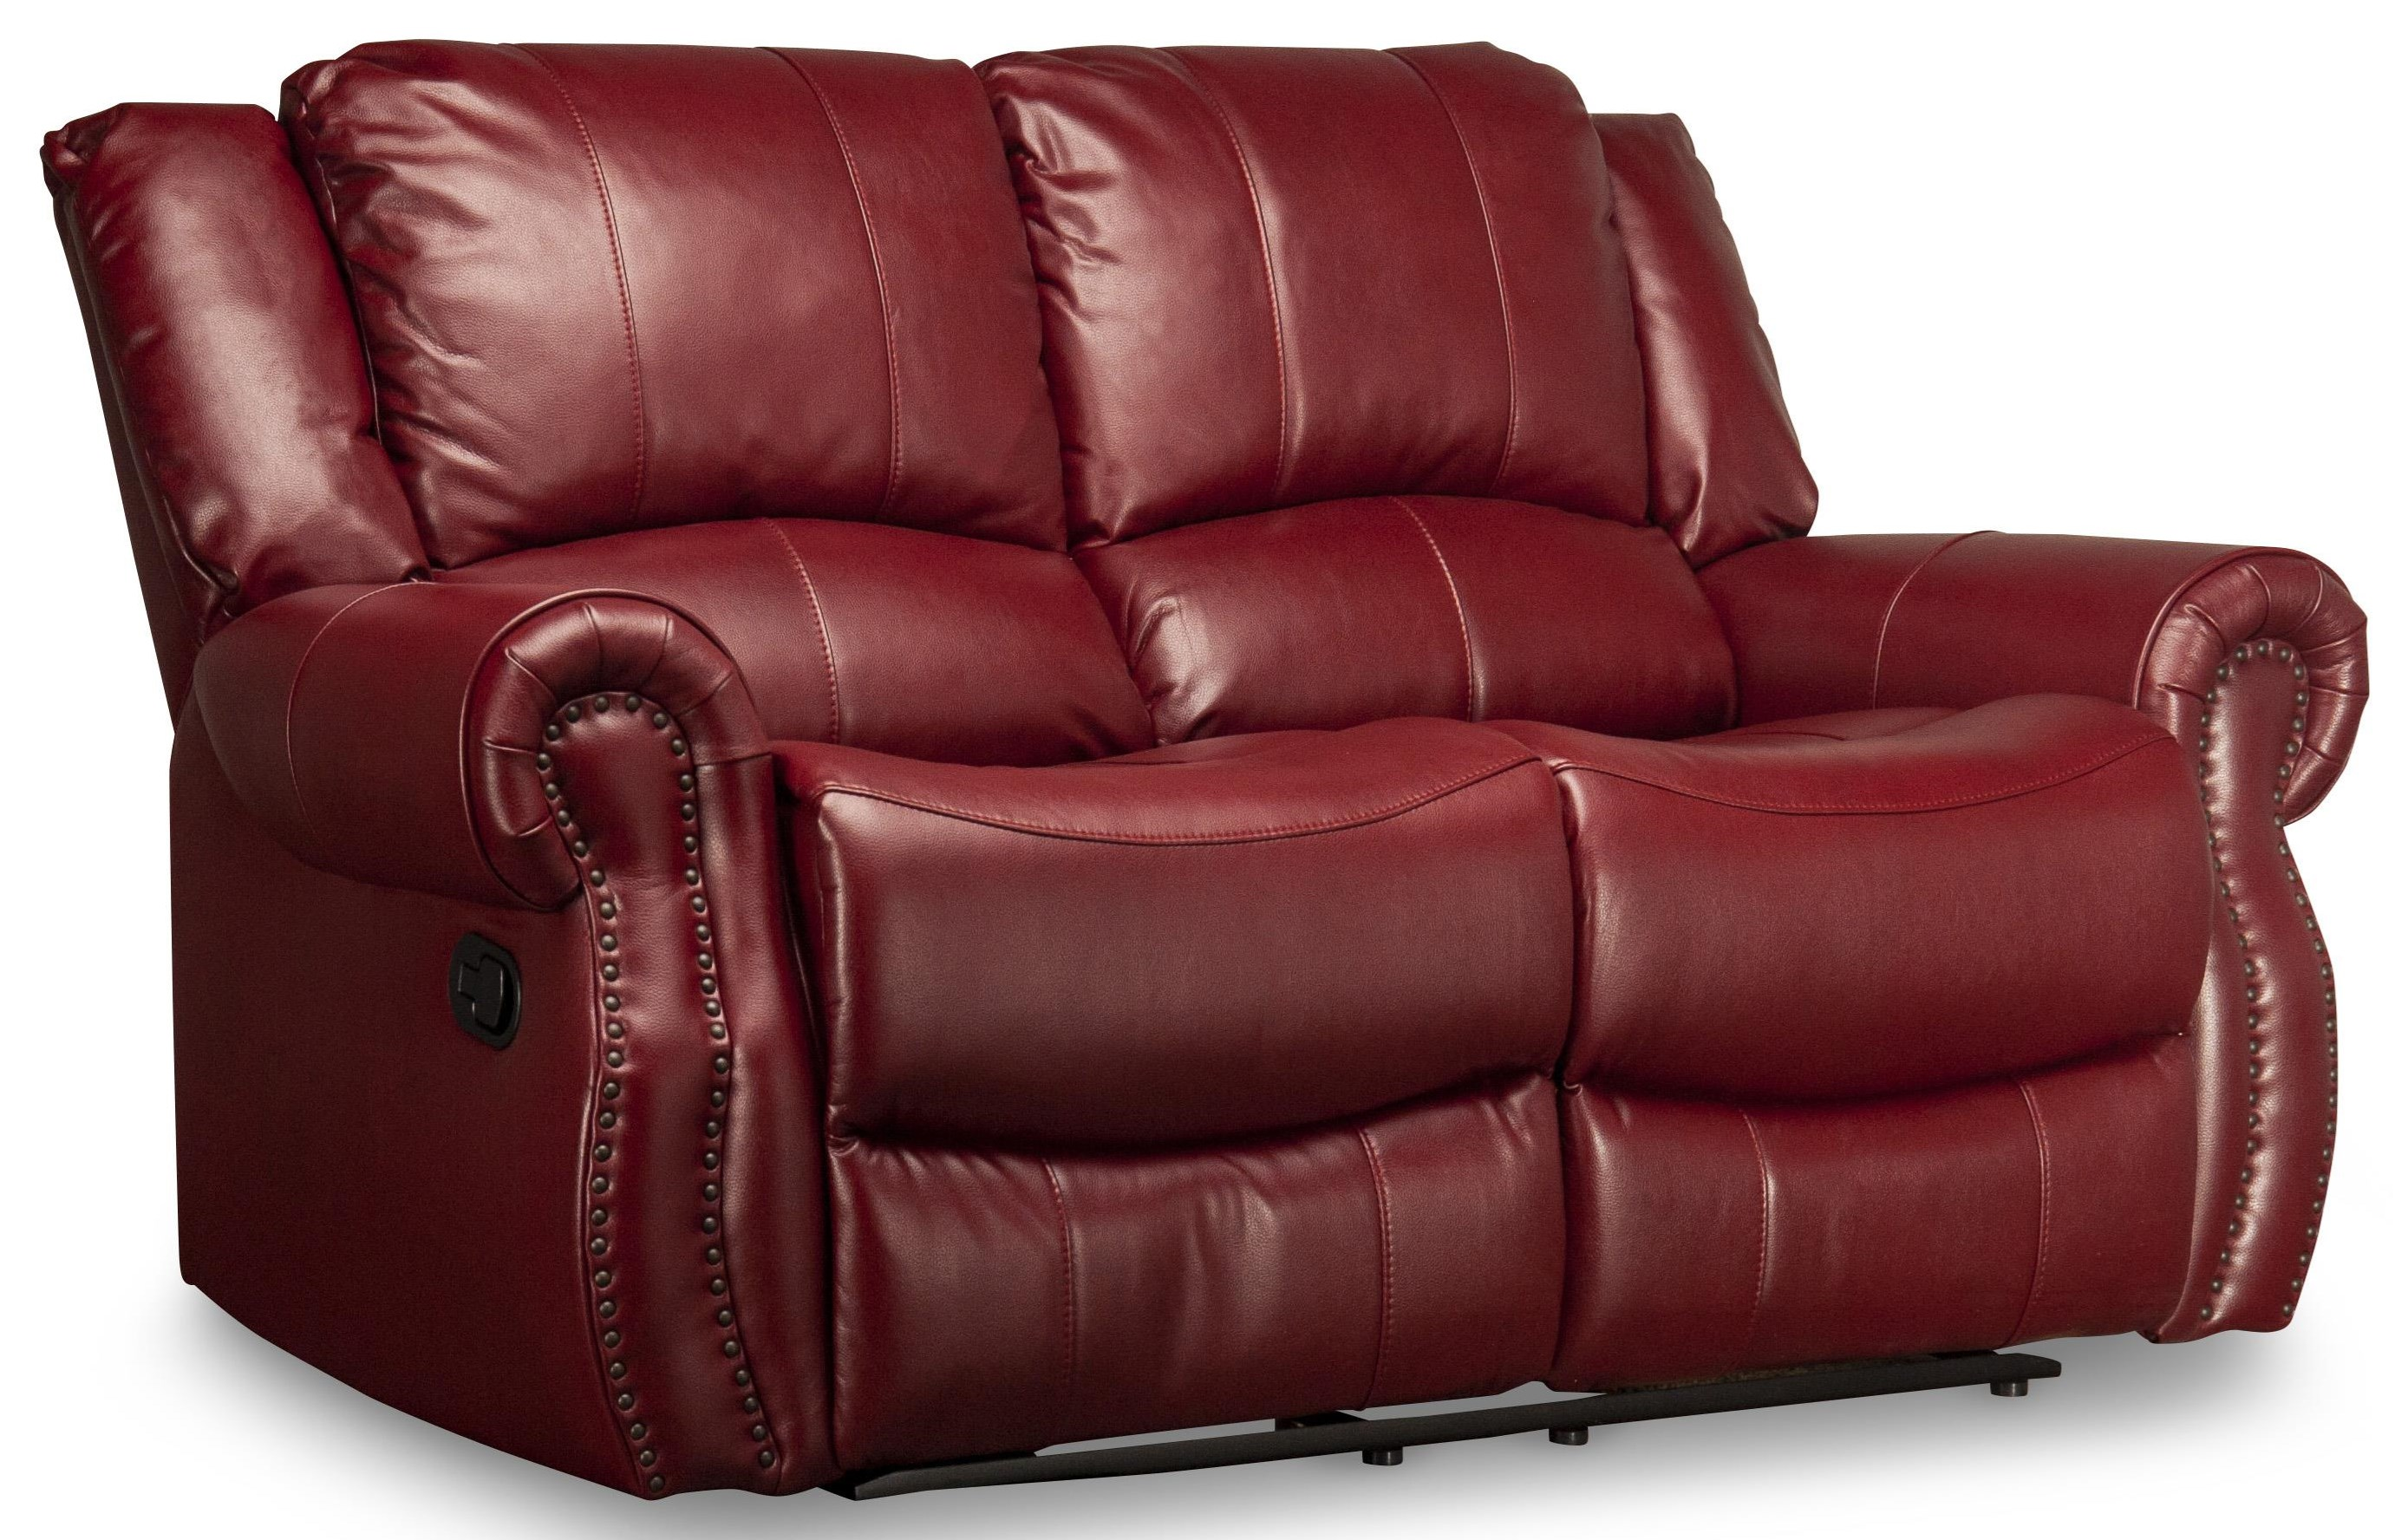 Cassia - Cassia Reclining Loveseat by Abbyson at Morris Home